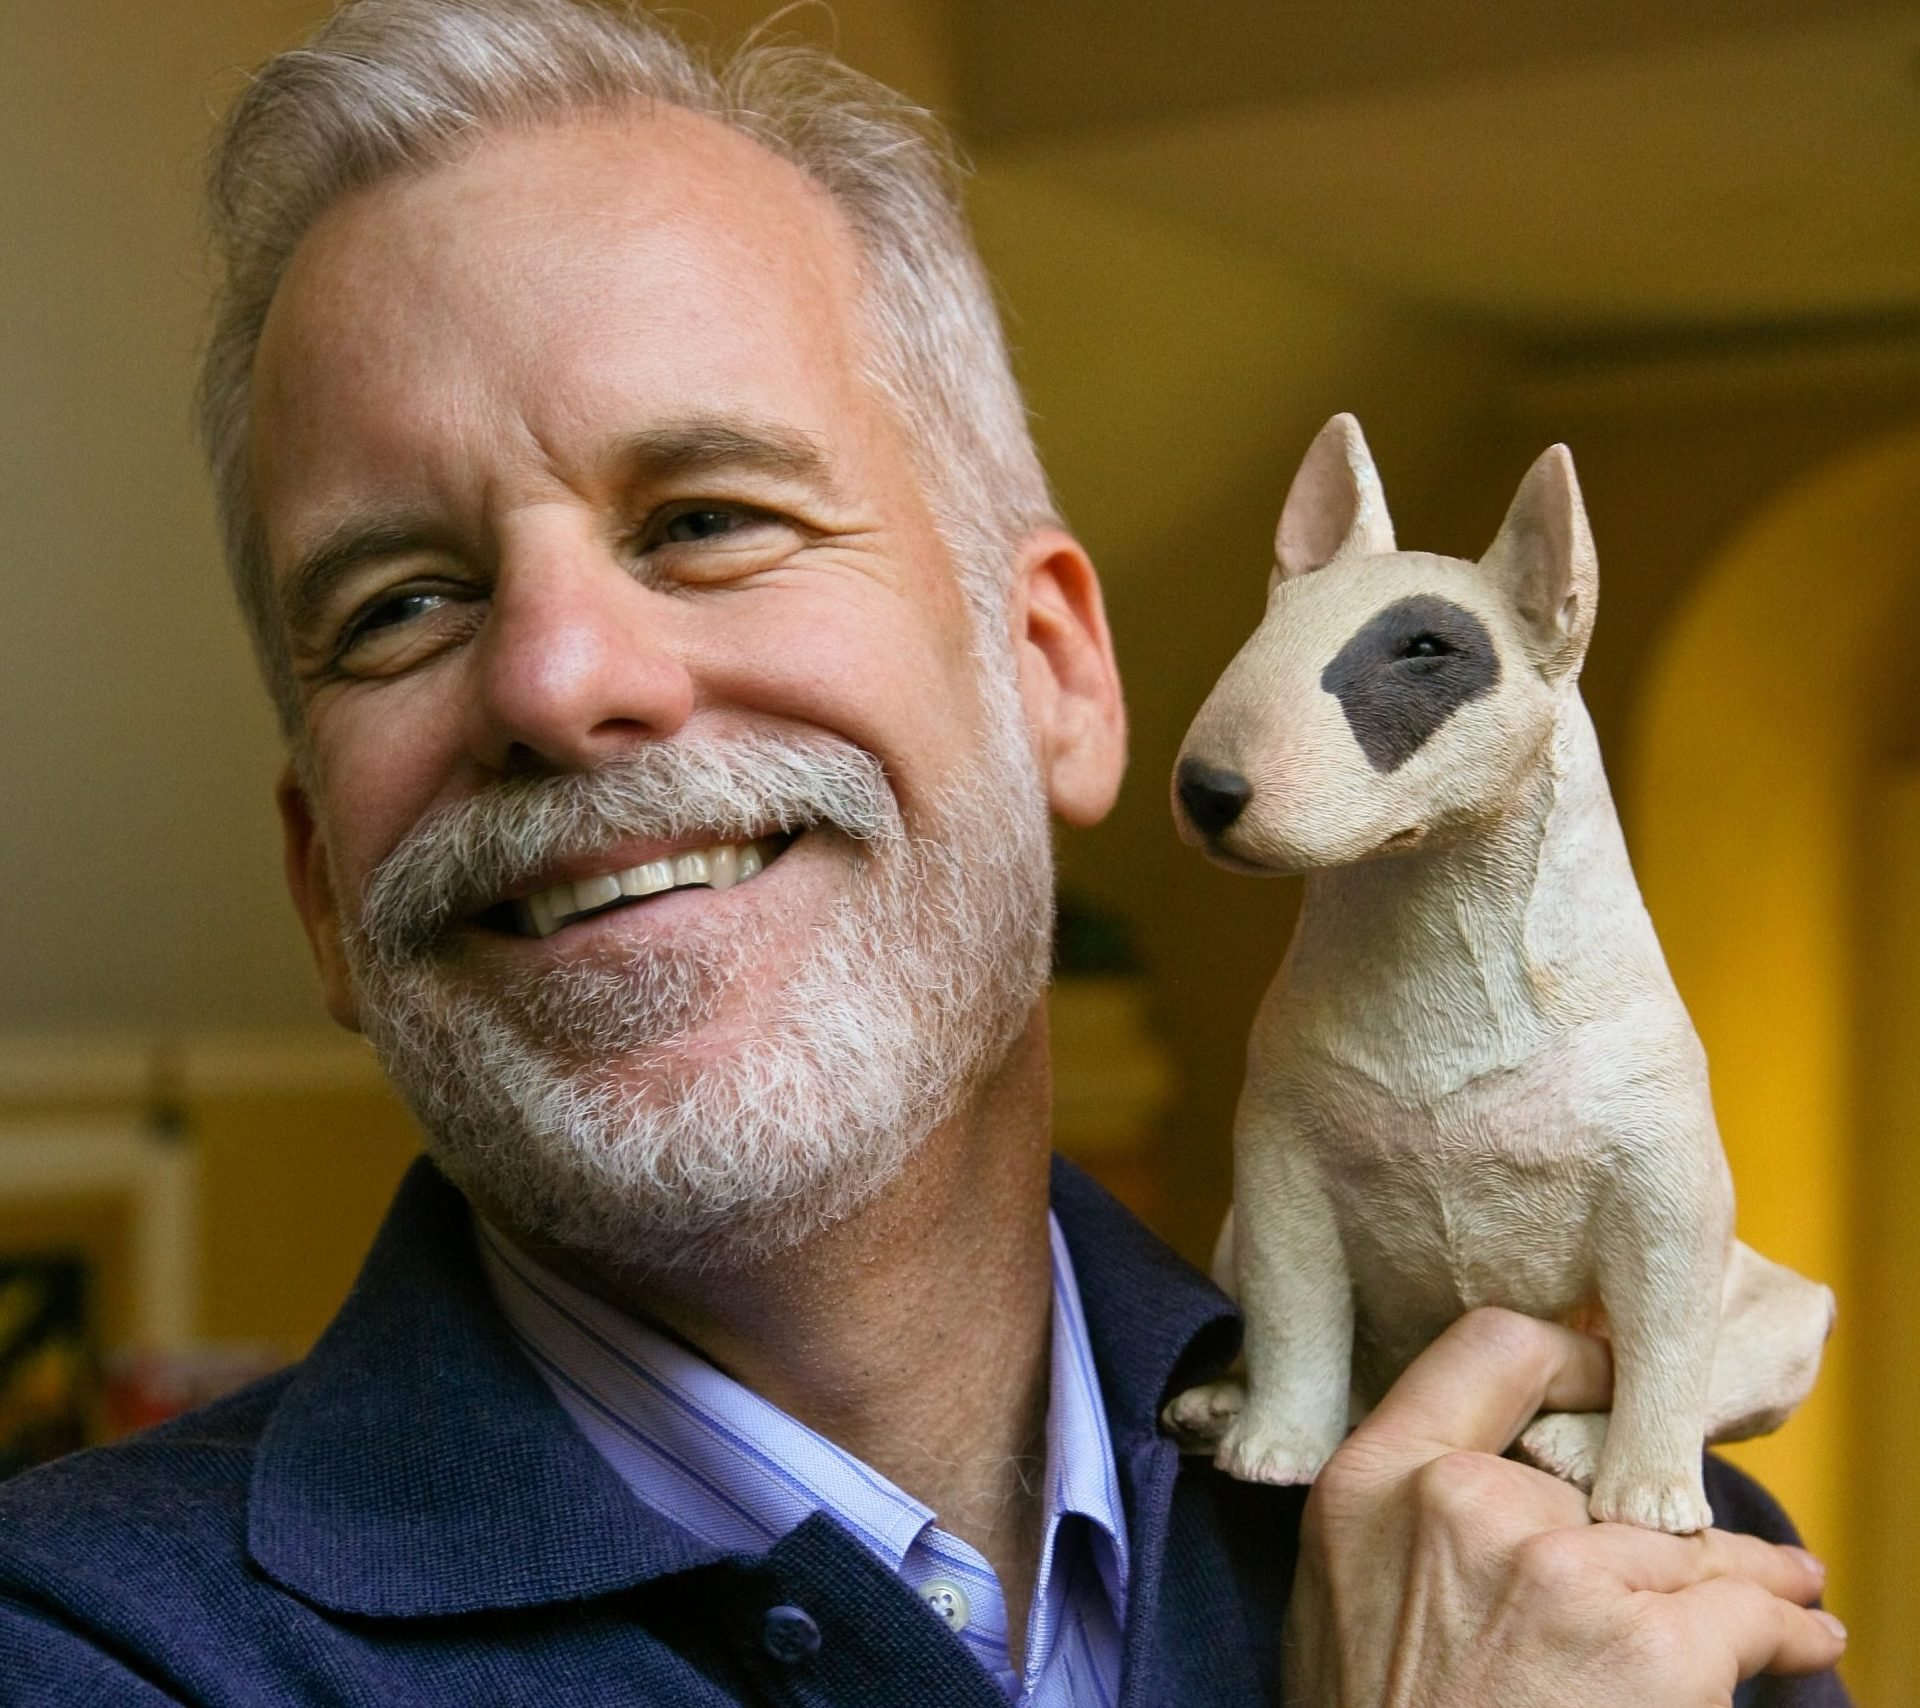 Chris Van Allsburg scaled e1615217887564 20 Facts You Probably Didn't Know About Jumanji